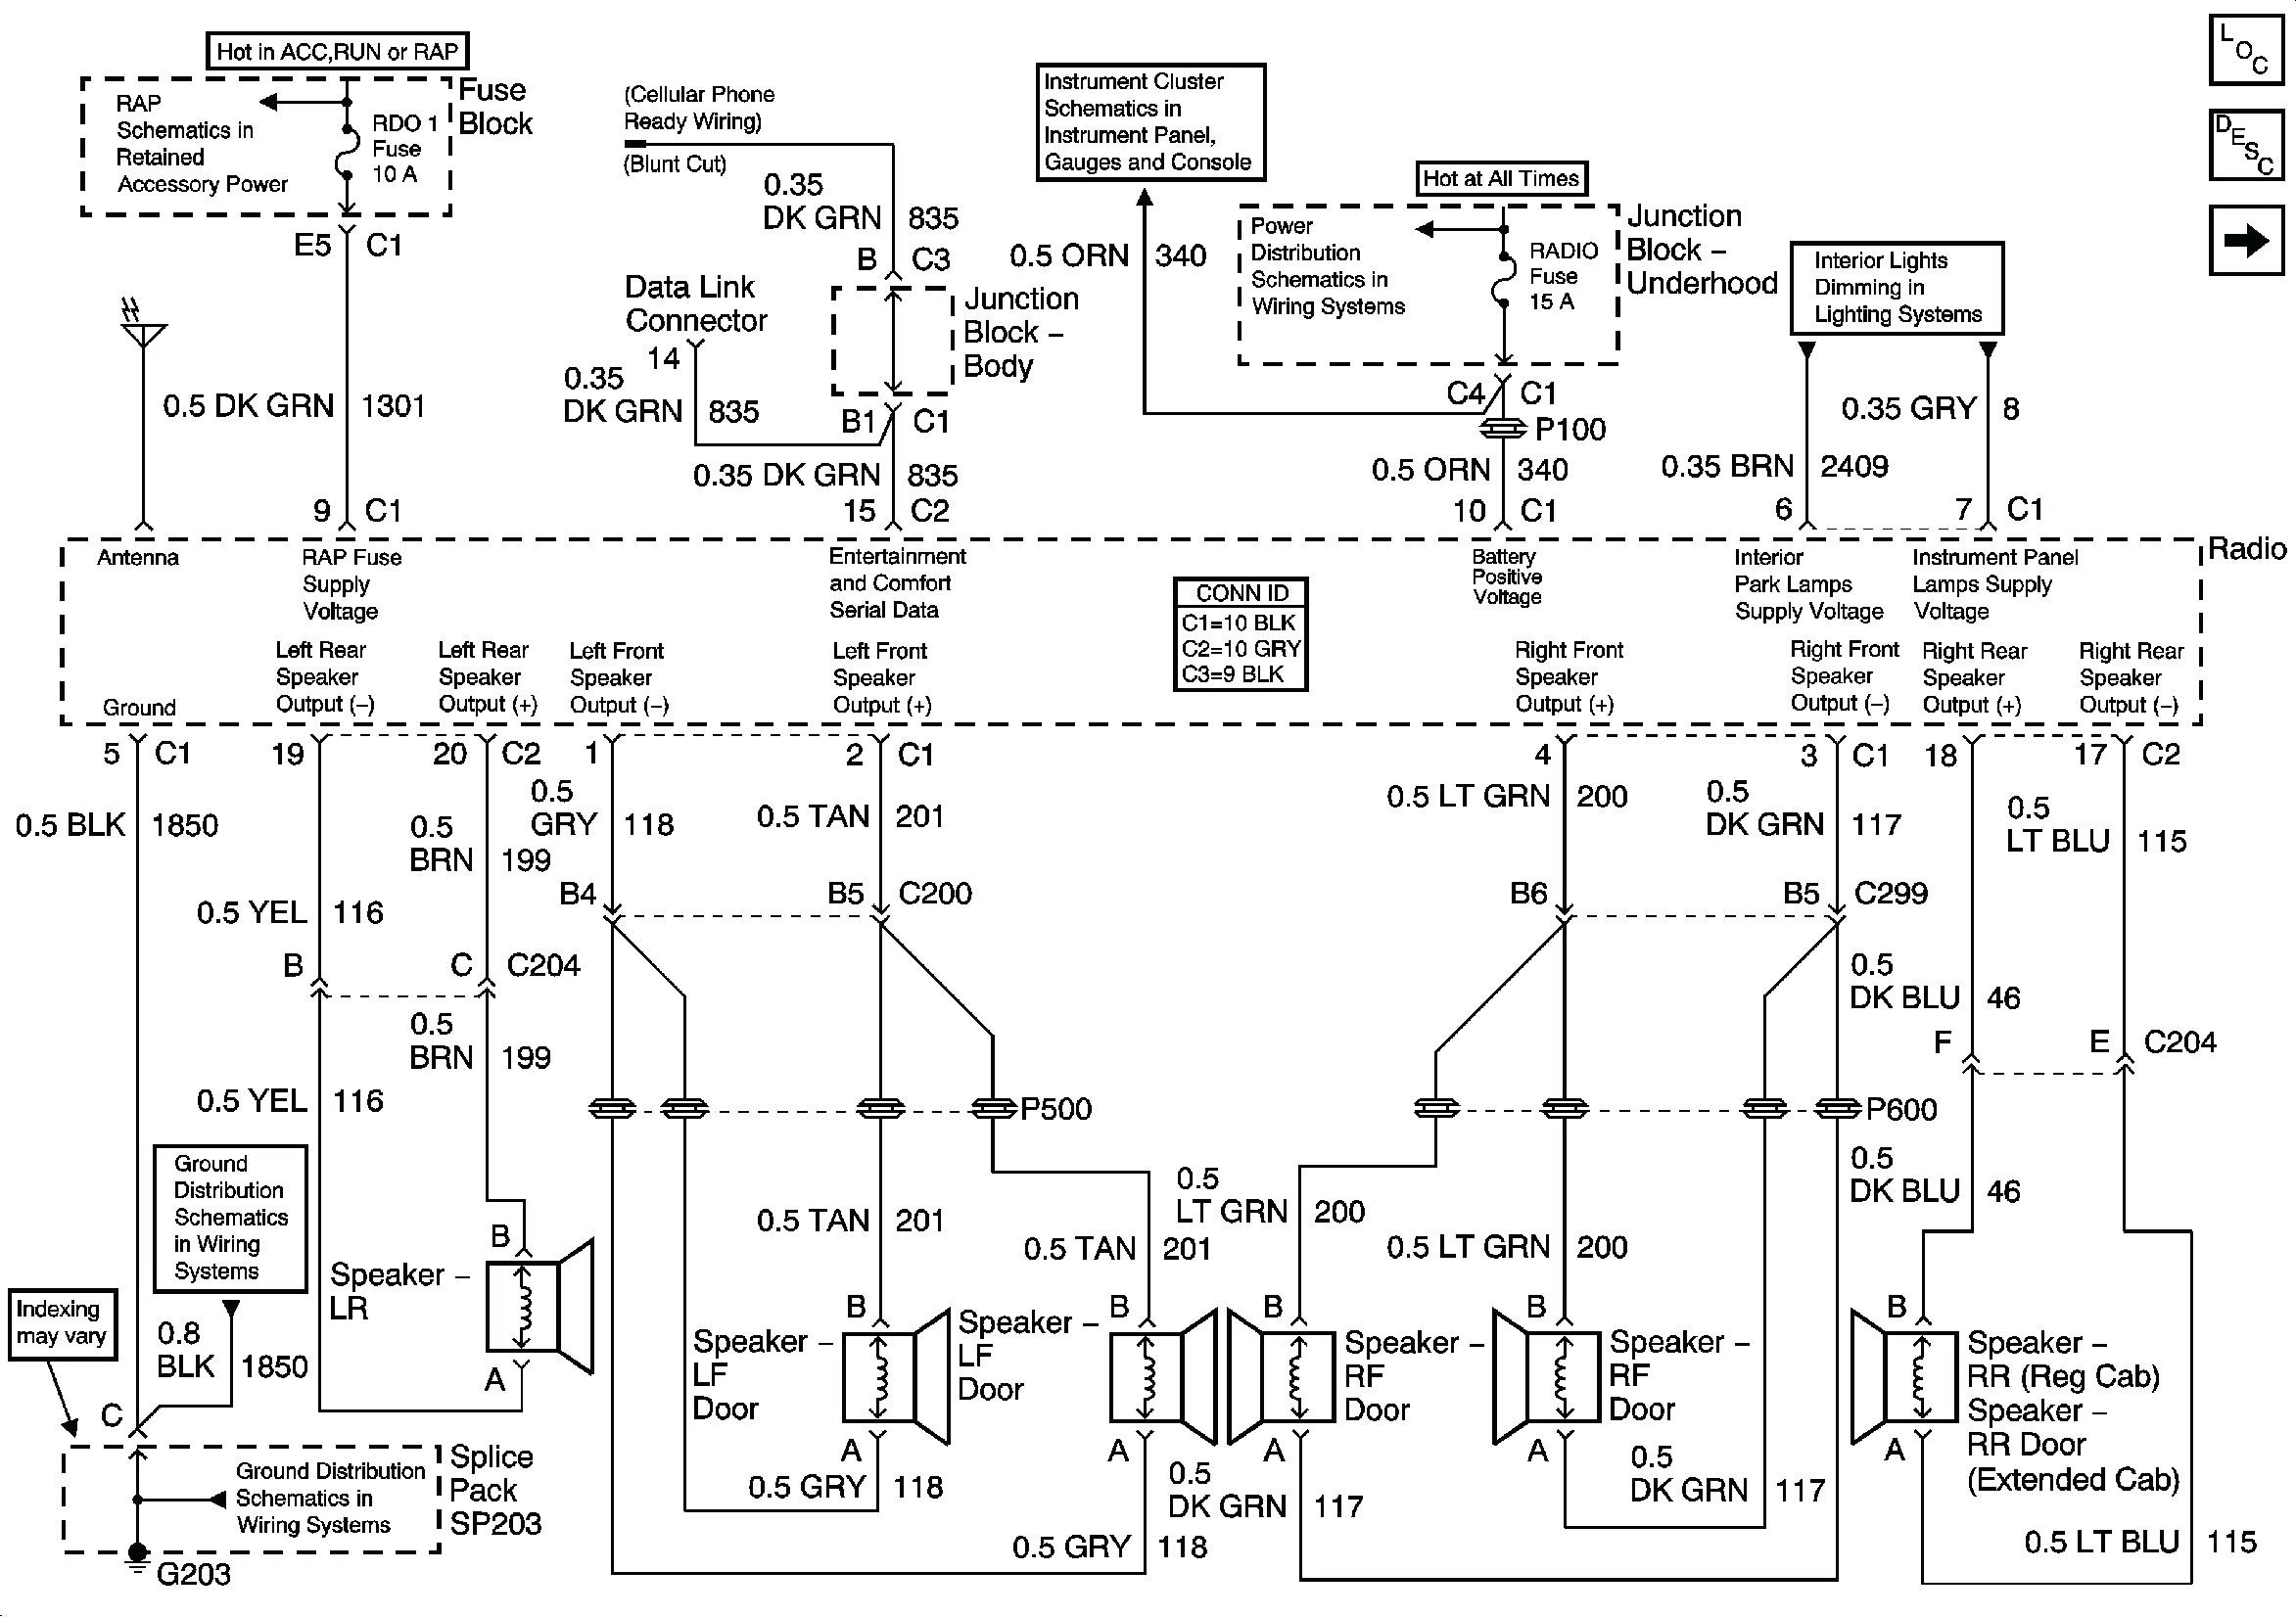 2001 chevy silverado trailer wiring diagram Collection-2001 Chevy Silverado 1500 Wiring Diagram 2006 Silverado Wiring Diagram New Chevy Blazer Radio Wiring 8-k